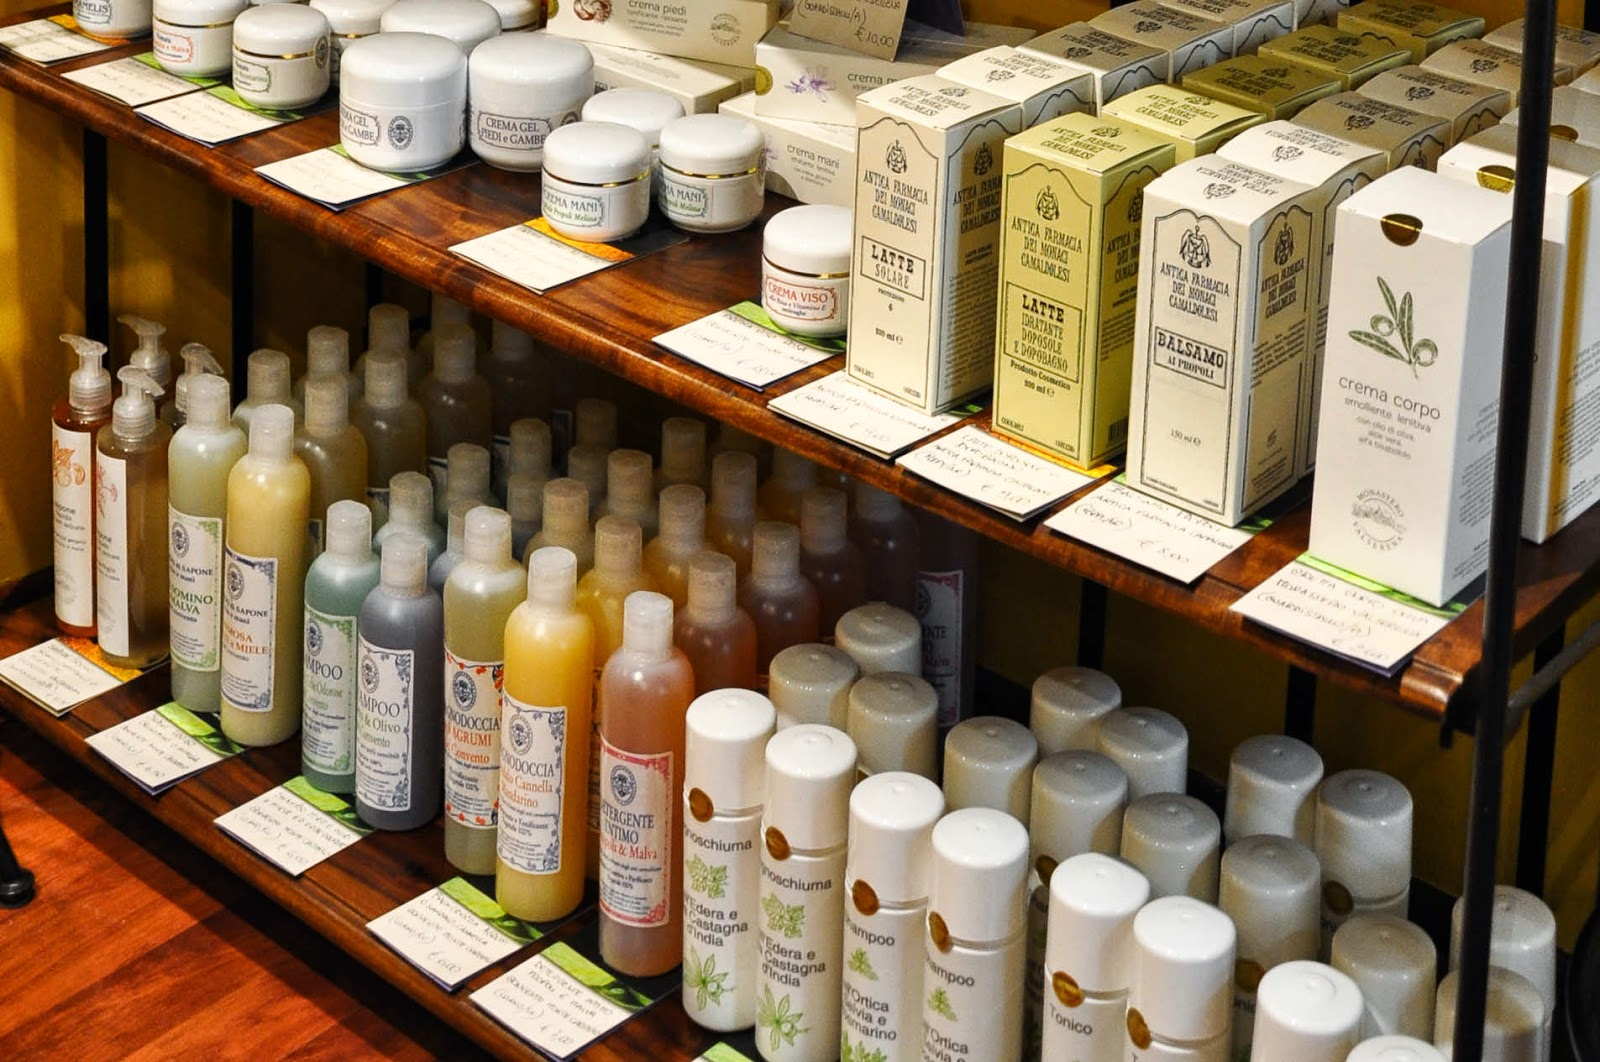 Handmade soaps and toiletries sold by the L'Angolo Sublime - a charming shop in Vicenza selling artisan products made in Italian monasteries-3